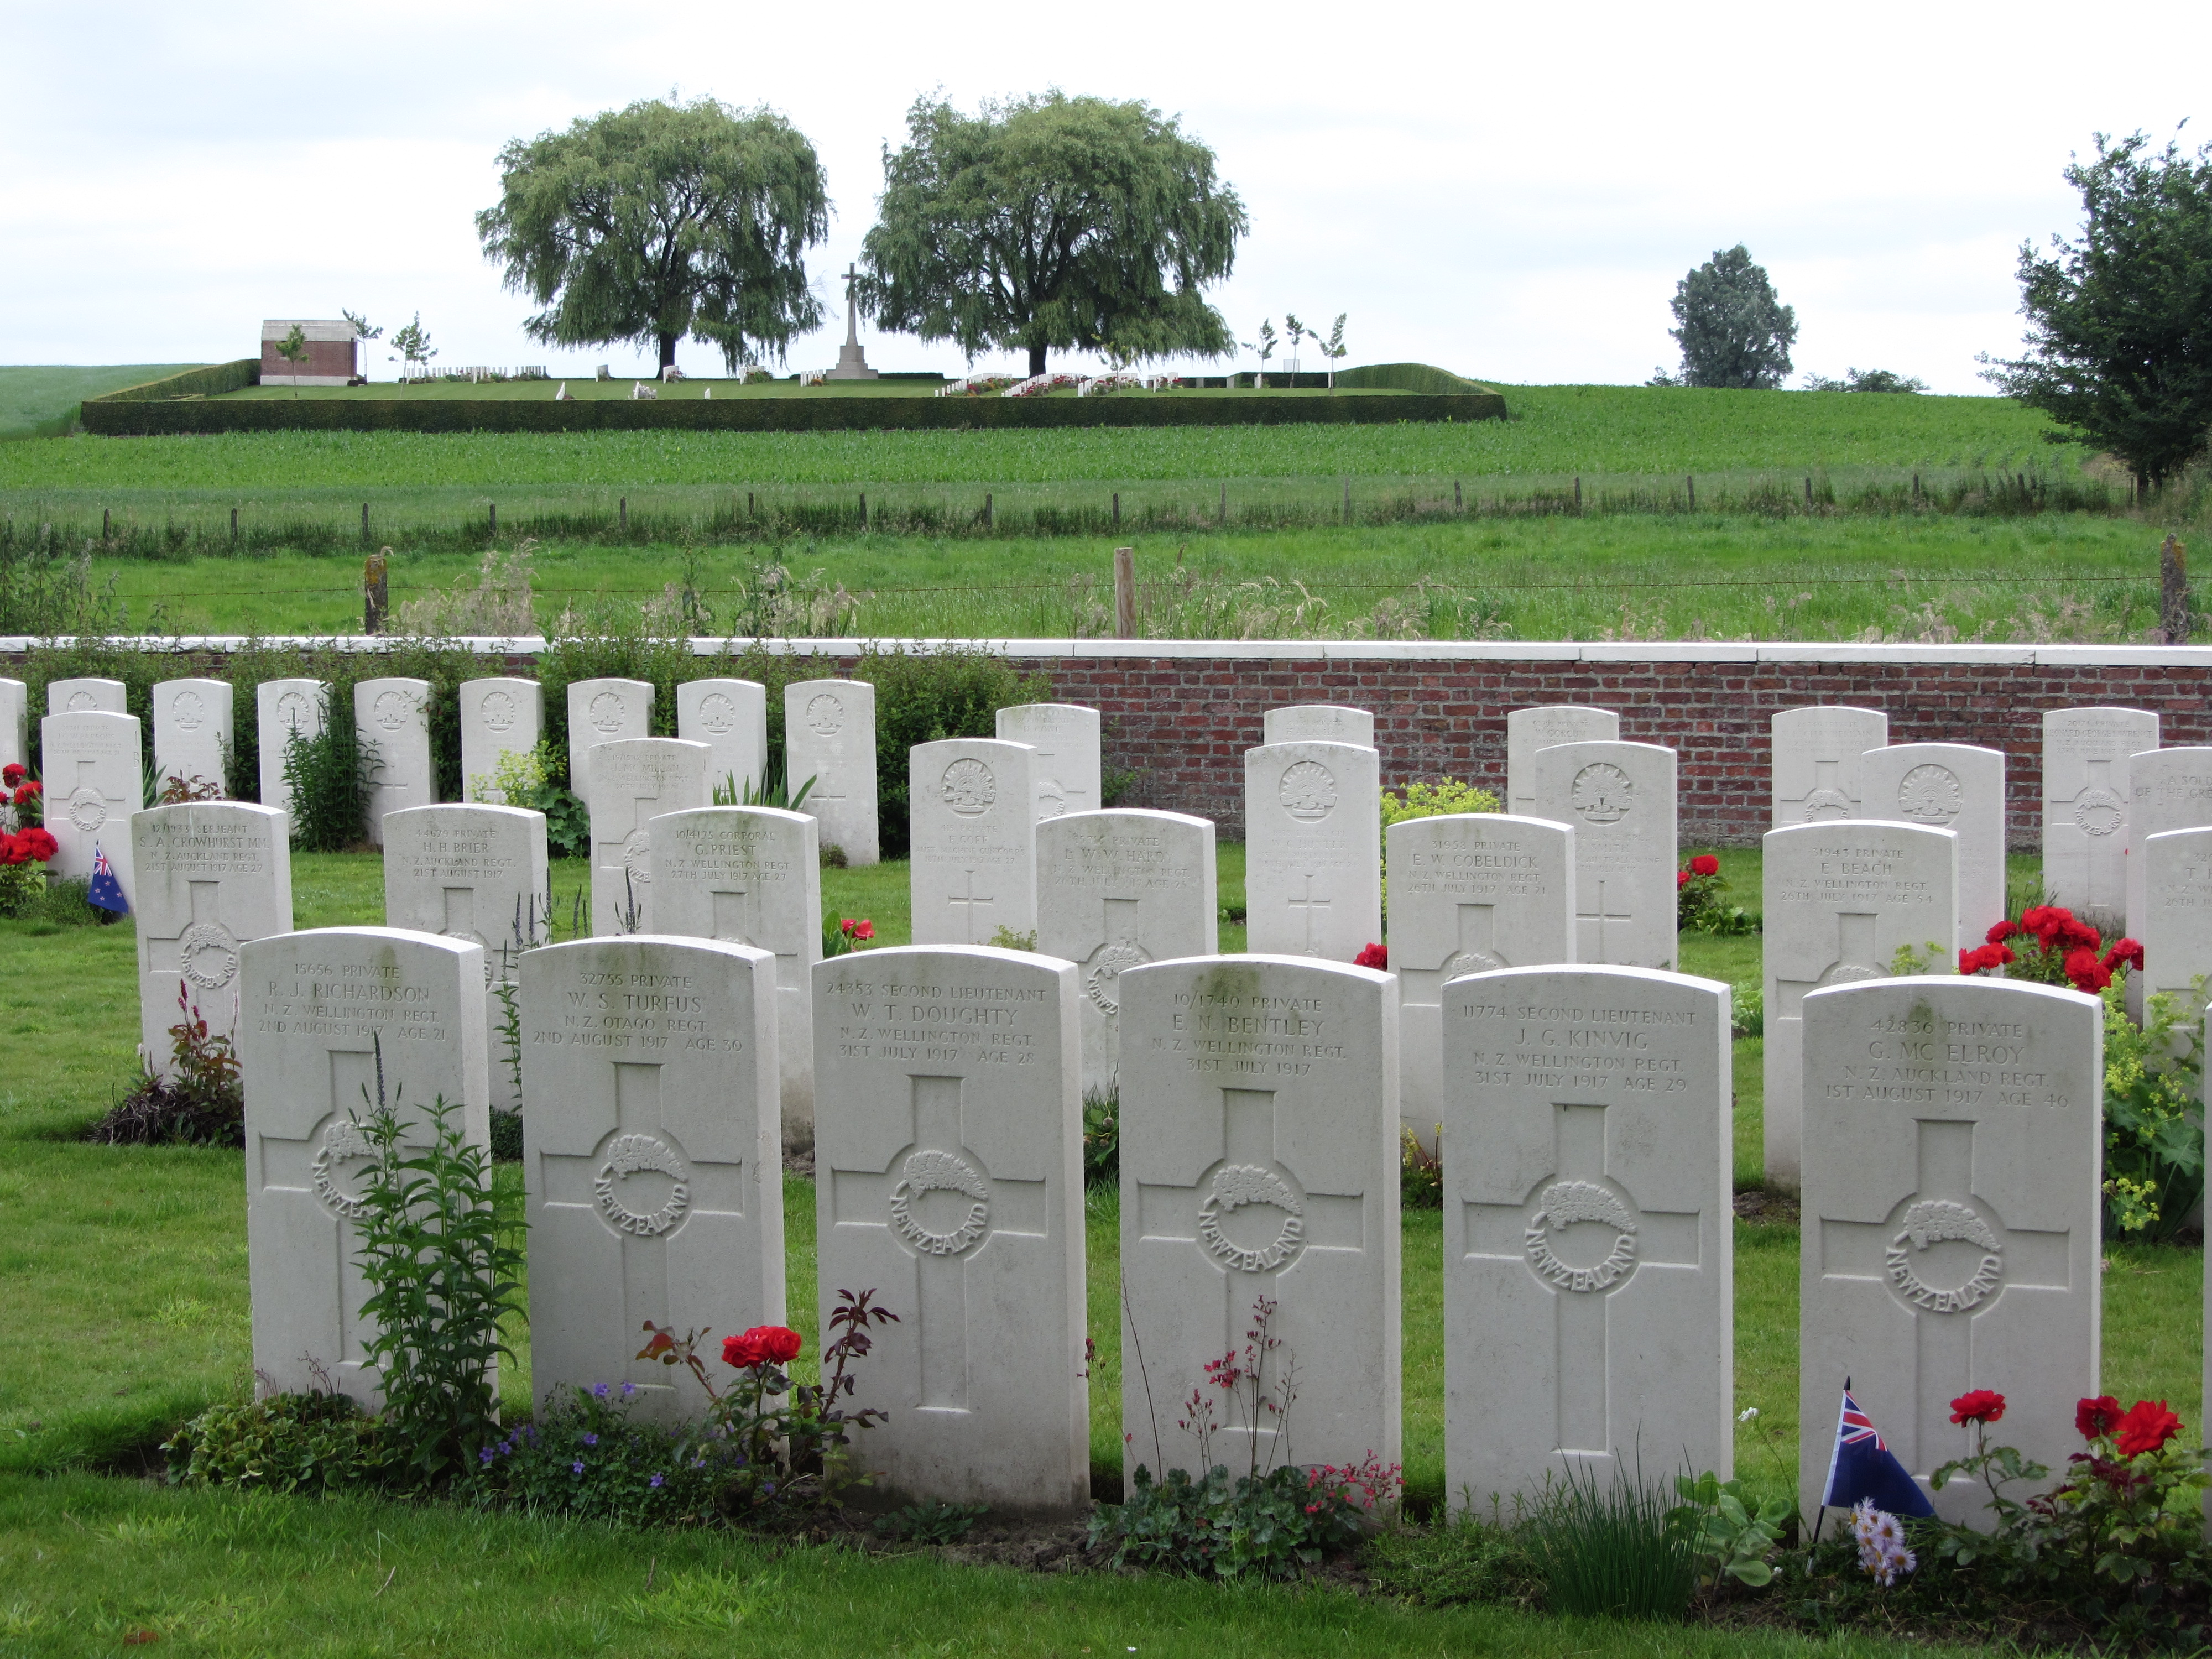 cemetery and familiar mud track Dickebusch new military cemetery and extension are commonwealth war graves commission (cwgc) burial grounds for the dead of the first world war located in the ypres salient on the western front in belgium.